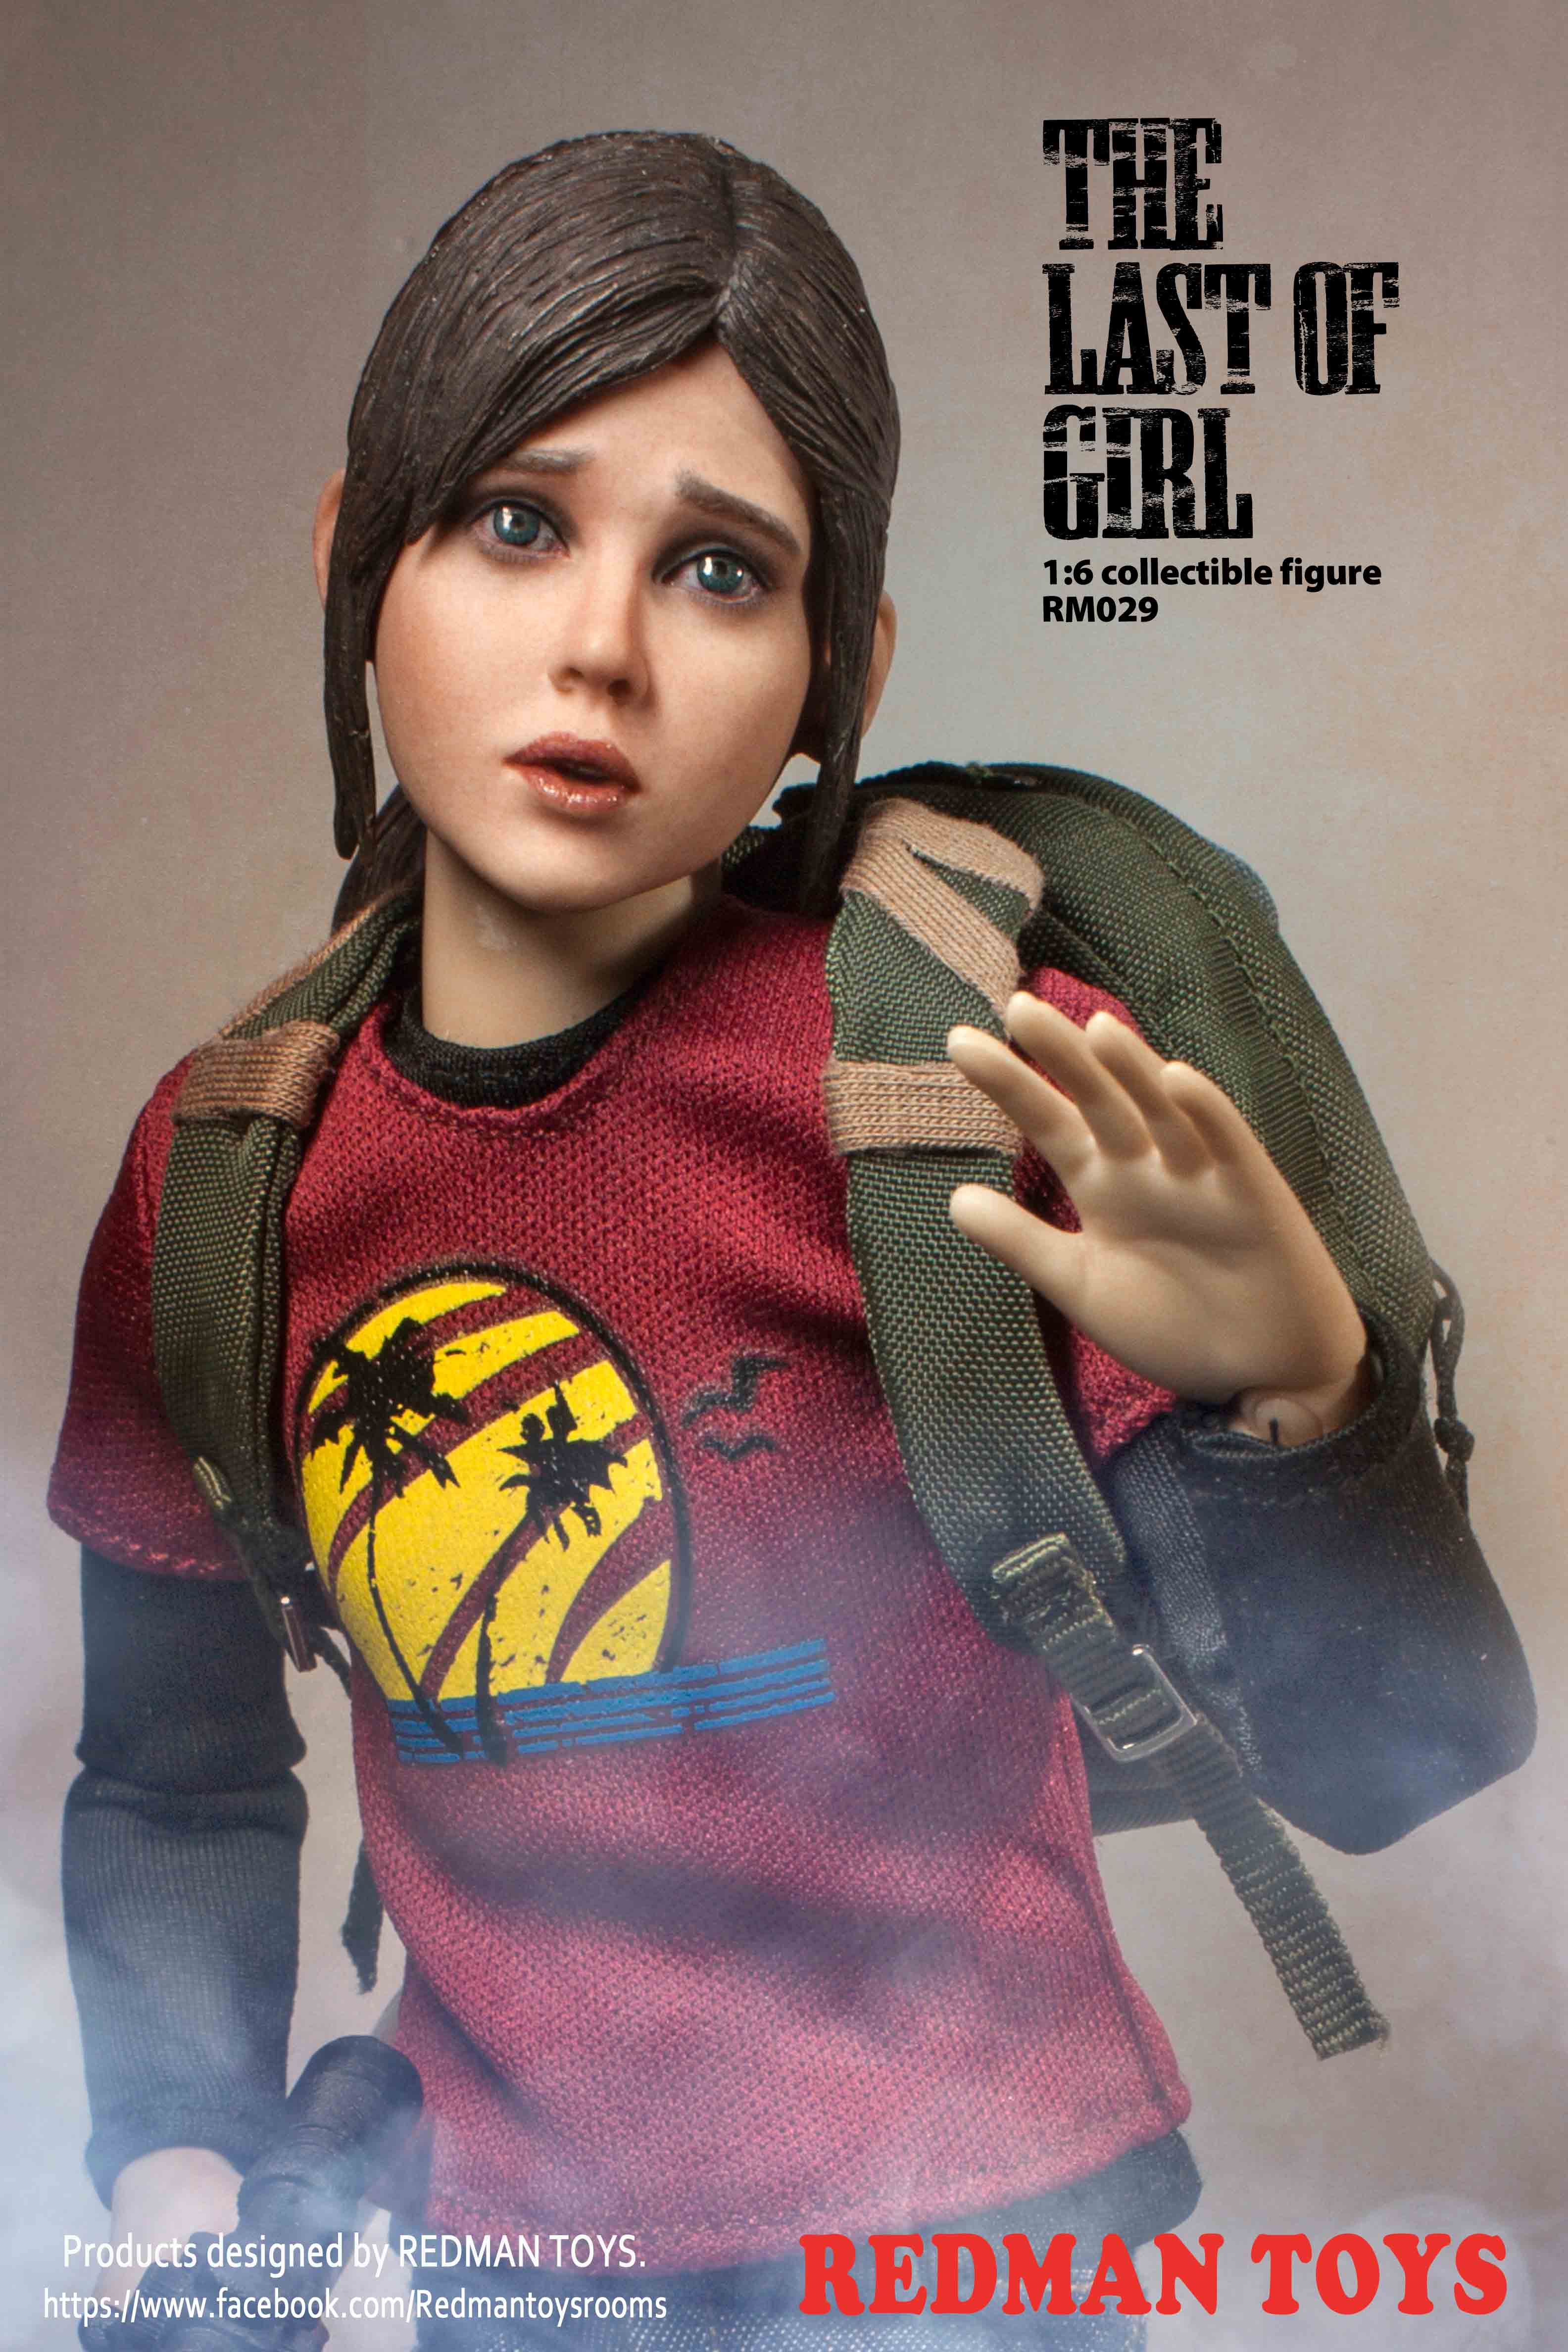 24/08/2018 REDMAN TOYS RM029 THE LAST OF GIRL